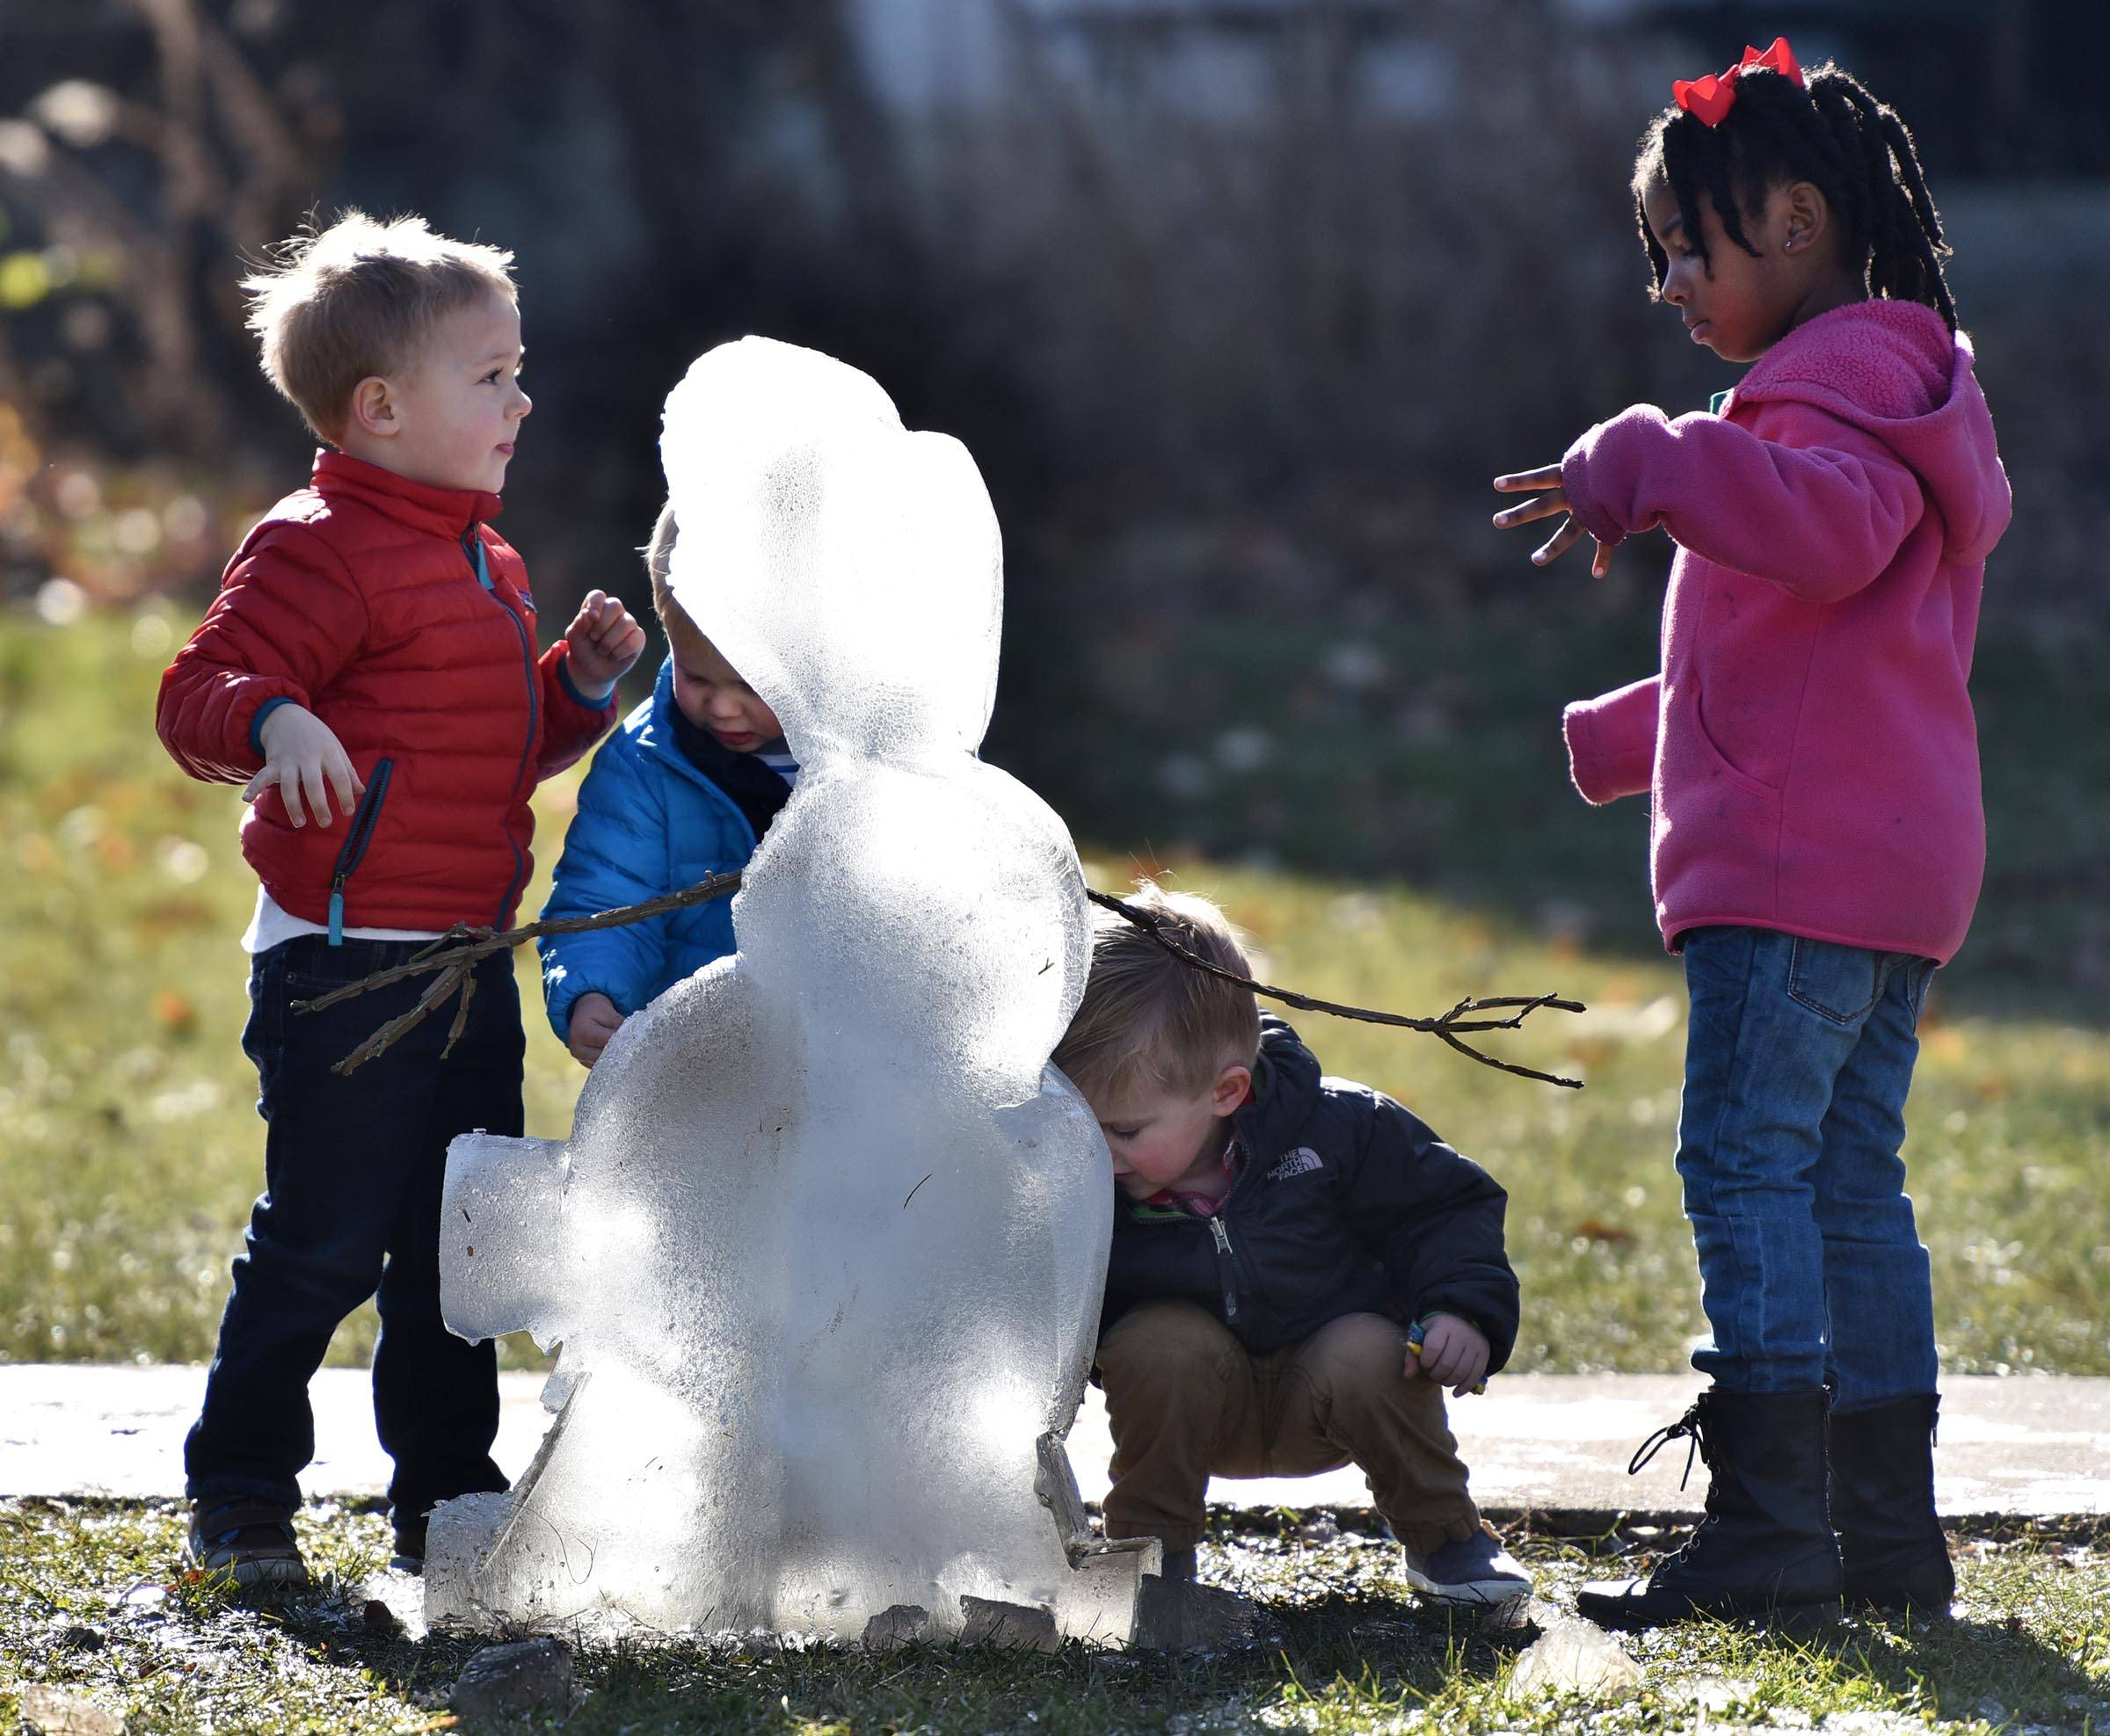 Children play around an ice sculpture Sunday at the Lights of Lisle Festival at Station Park in Lisle. The two-day festival featured hayrides, holiday music and a visit from Santa and Mrs. Claus.